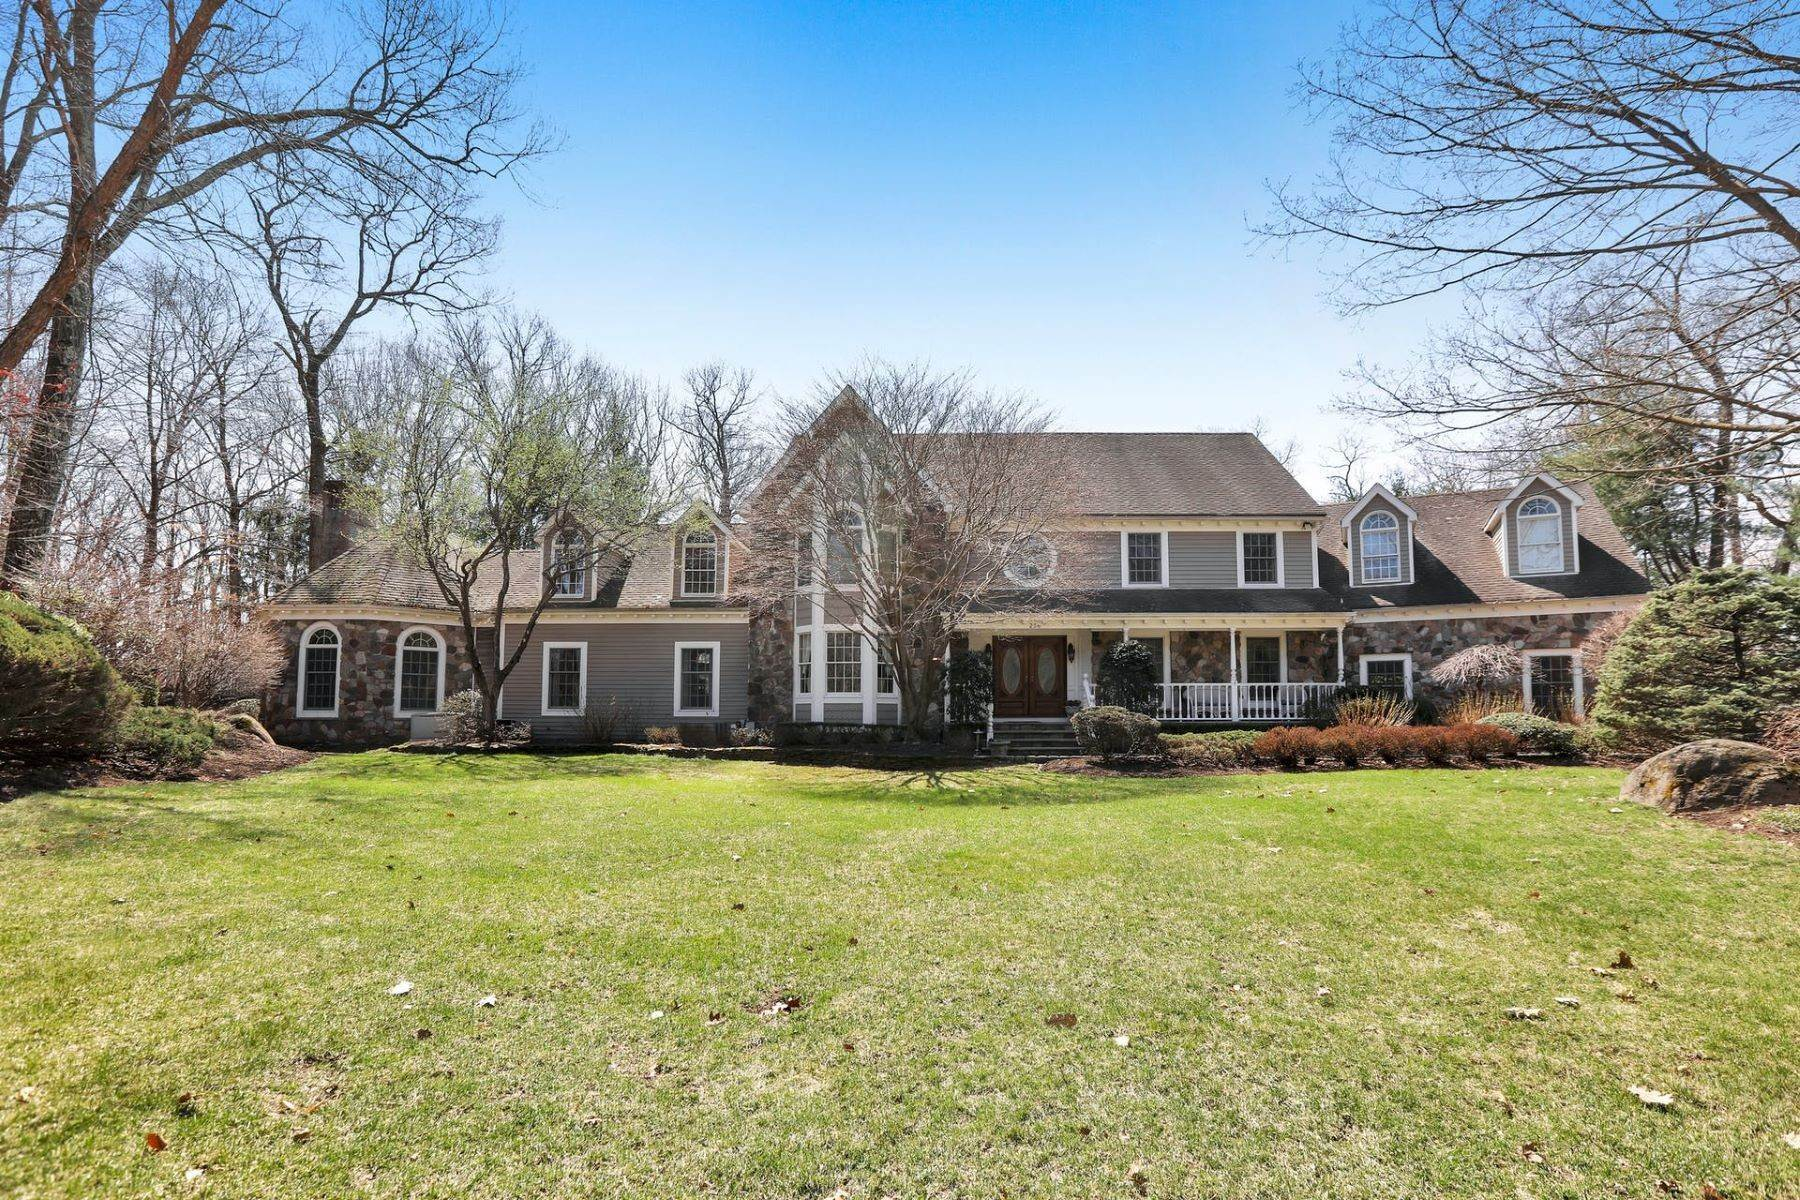 Single Family Homes for Sale at 286 Autumn Terrace Franklin Lakes NJ 07417 286 Autumn Terrace Franklin Lakes, New Jersey 07417 United States